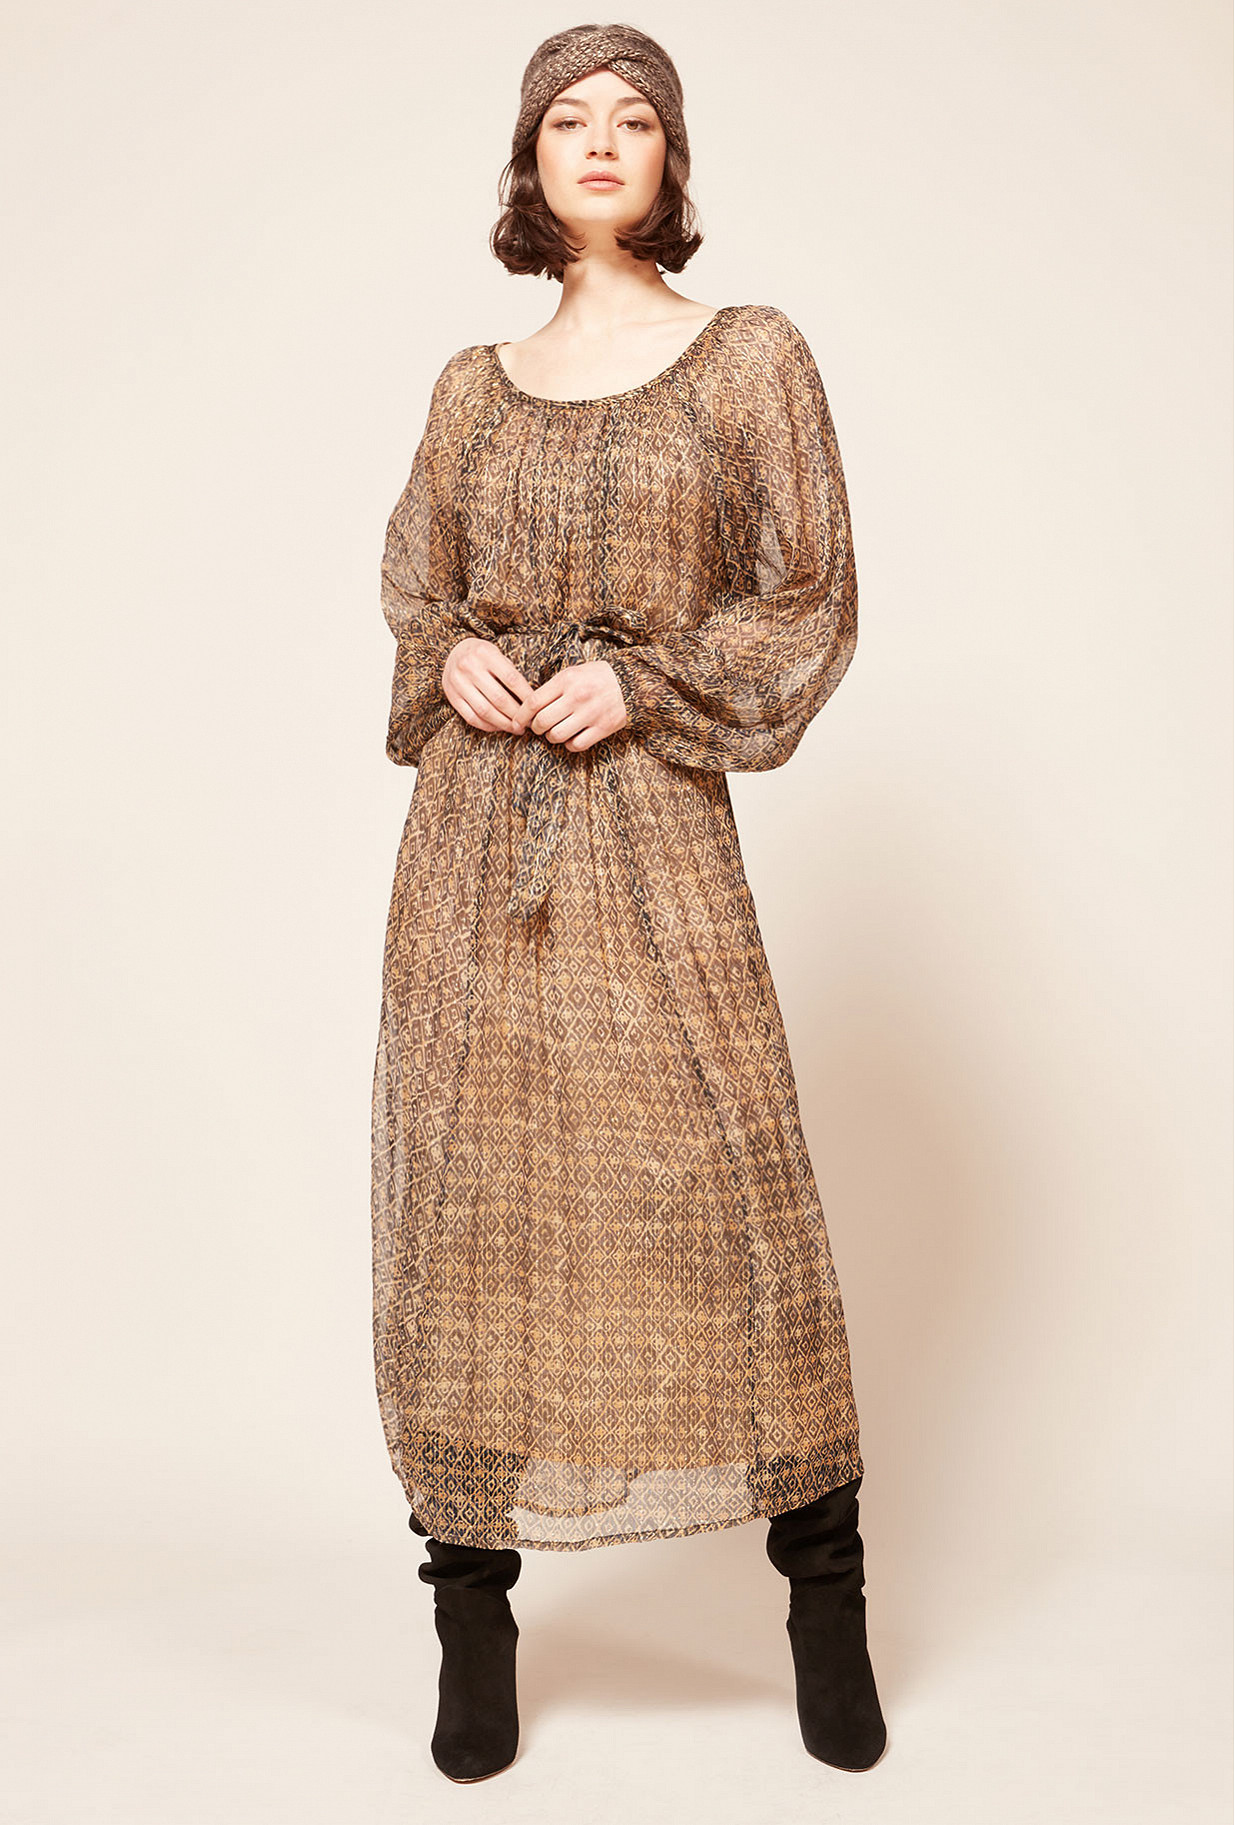 Brown print  Dress  Raissa Mes demoiselles fashion clothes designer Paris